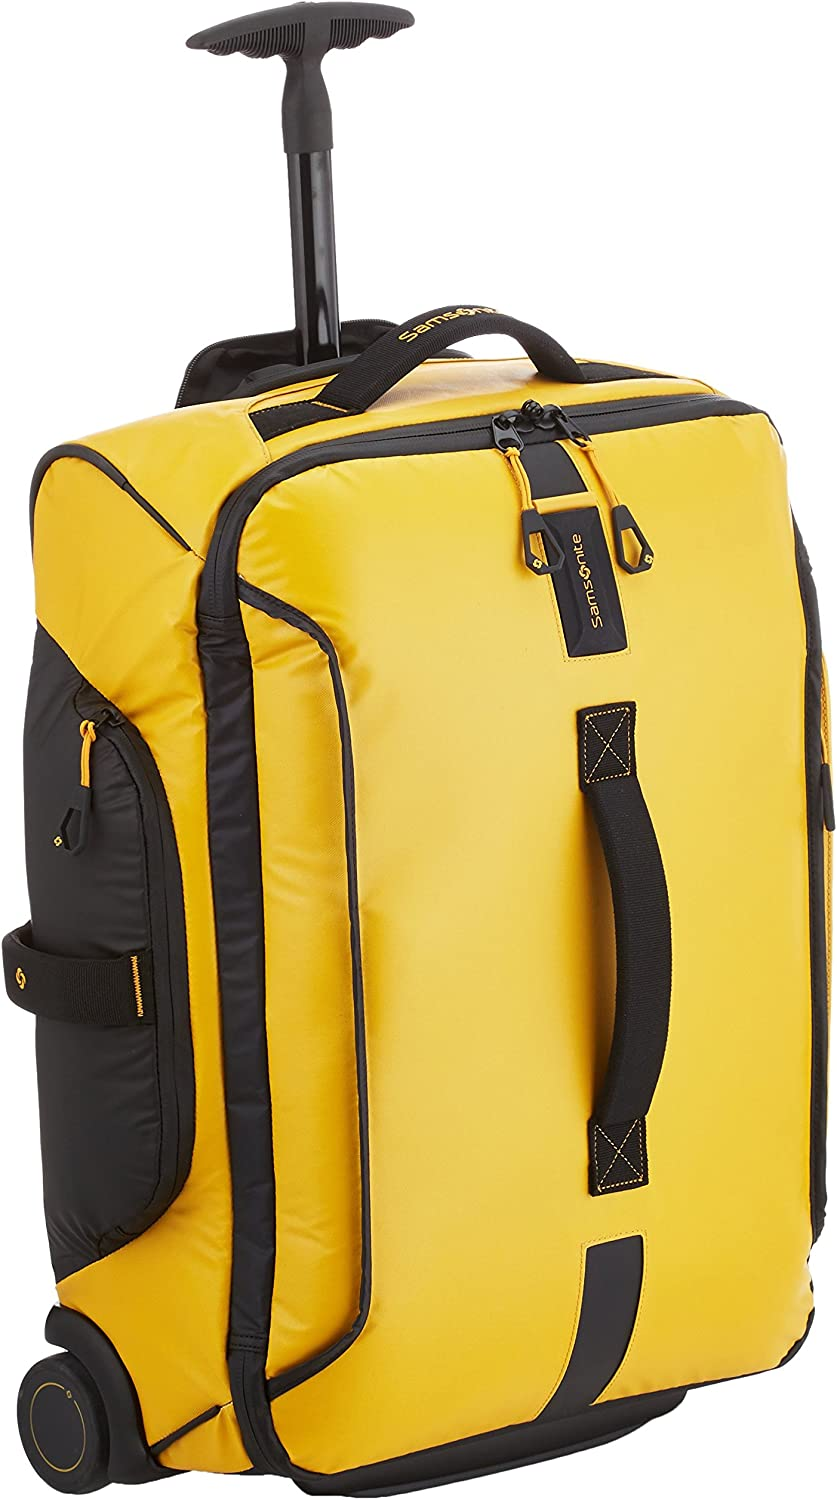 Samsonite Paradiver Light - Bolsa de viaje con ruedas, Amarillo (Yellow), S (55 cm - 48.5 L)